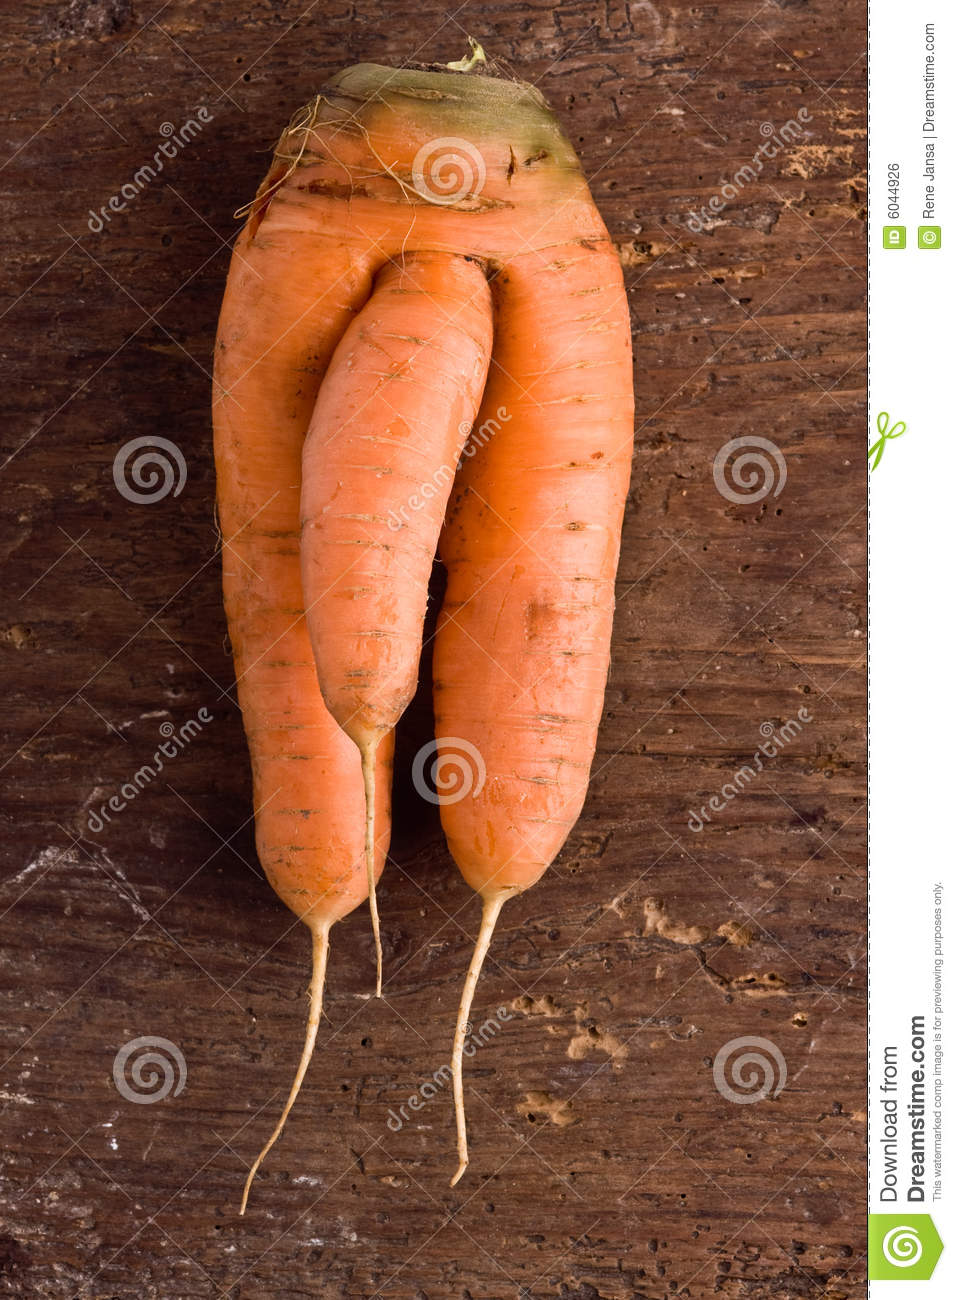 Strange Carrot Royalty Free Stock Image - Image: 6044926